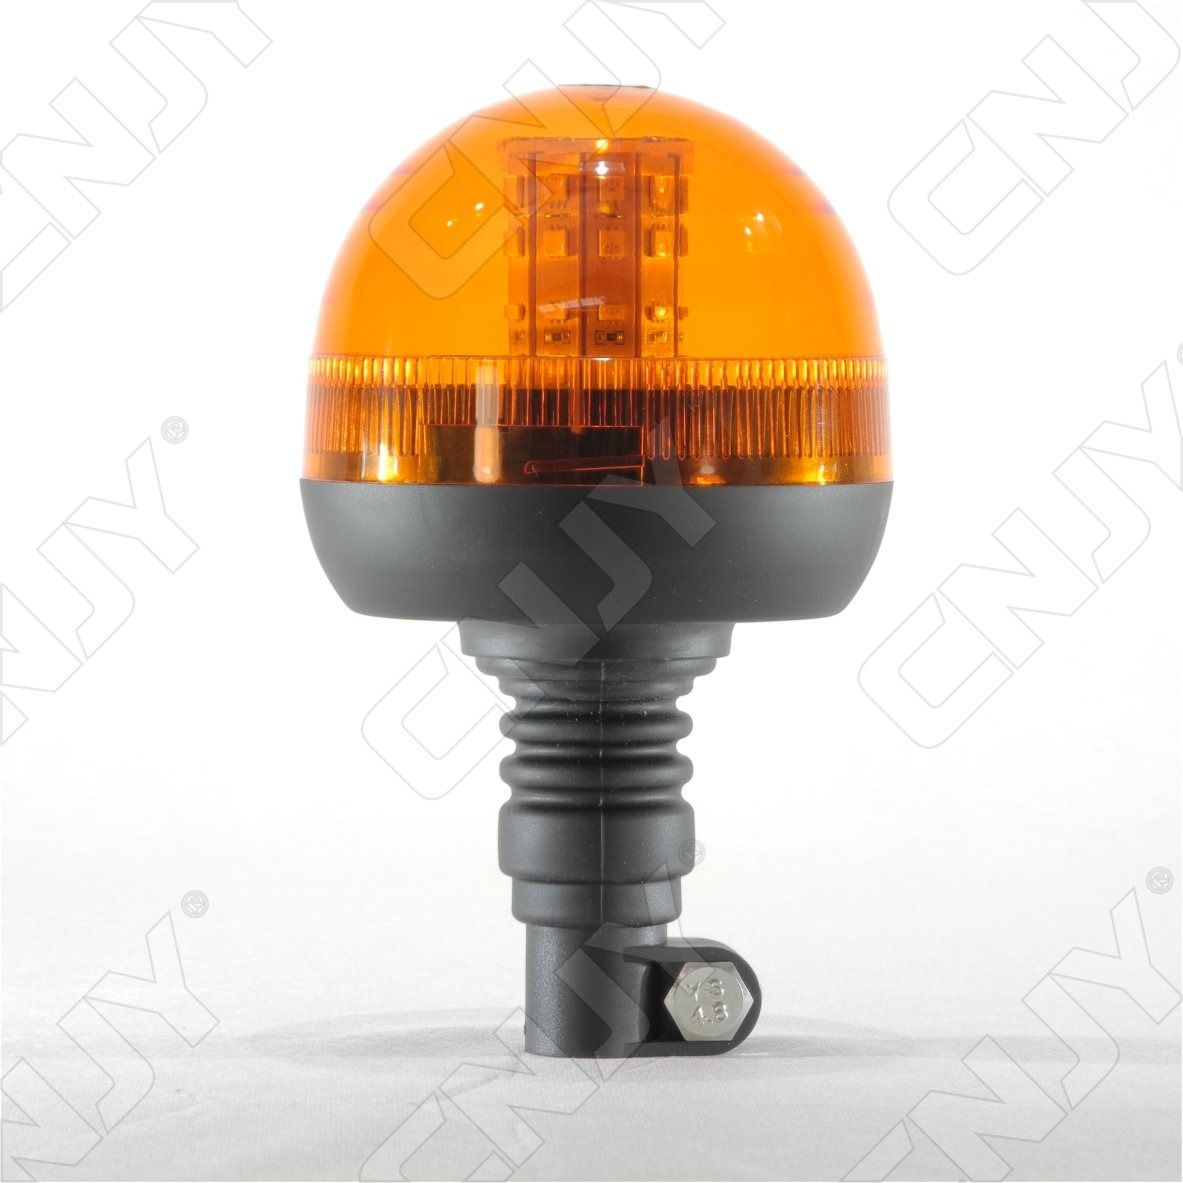 Eclairage Led Agricole Gyrophare 40 Led 12w Orange Sur Mât Flexible Ece R65